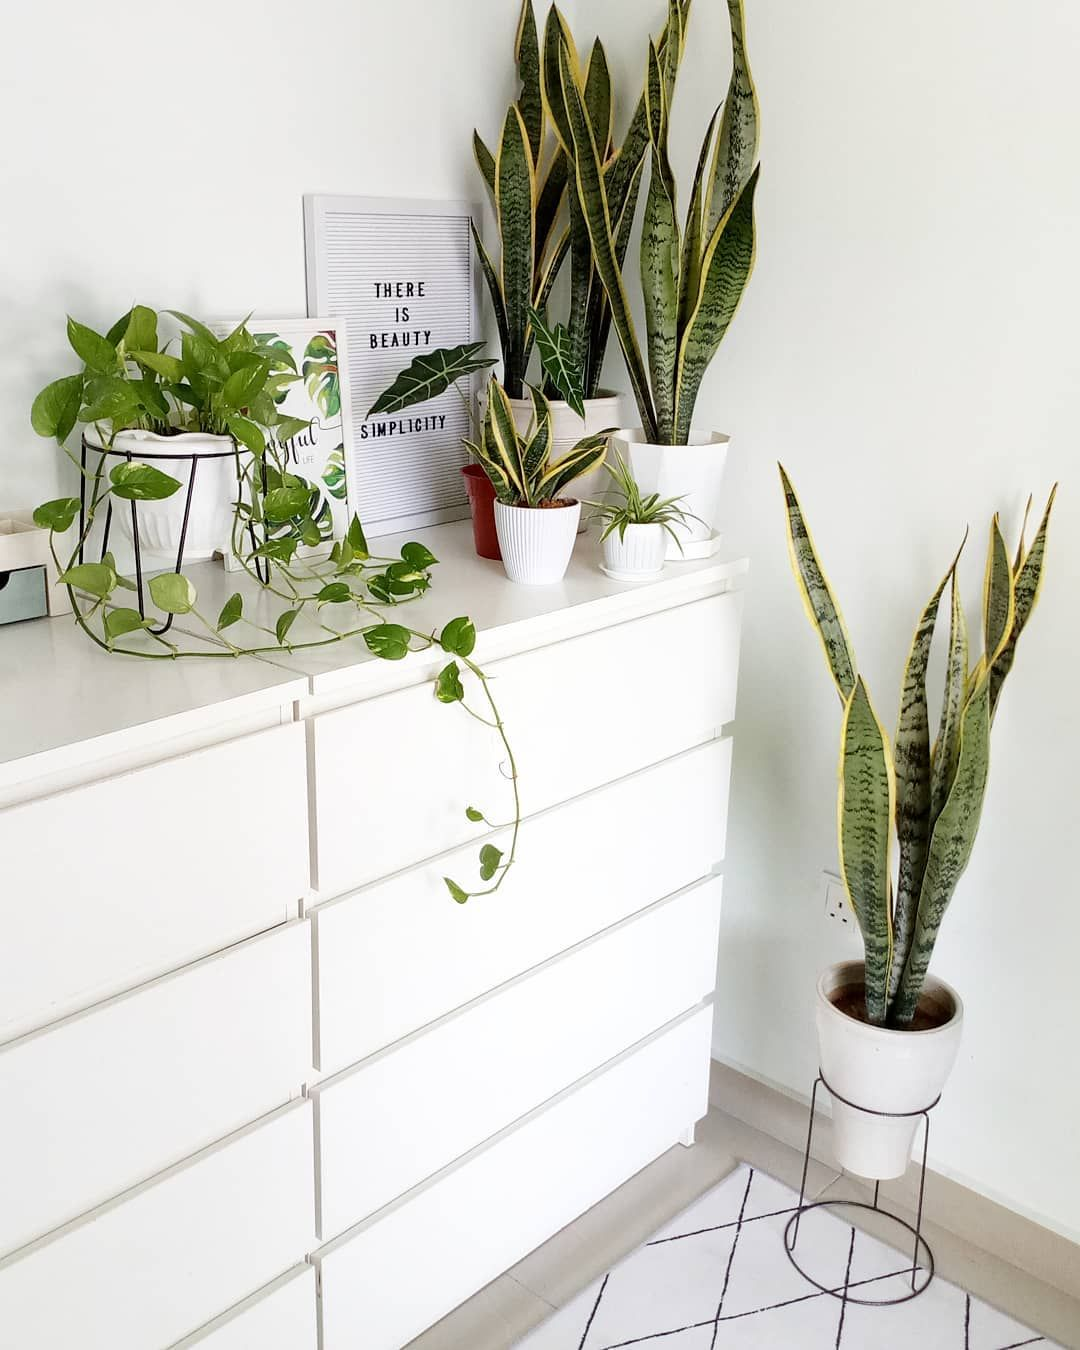 Sansevieria Snake Plant Golden Pothos Air Purifying House Plants Clean Healthy